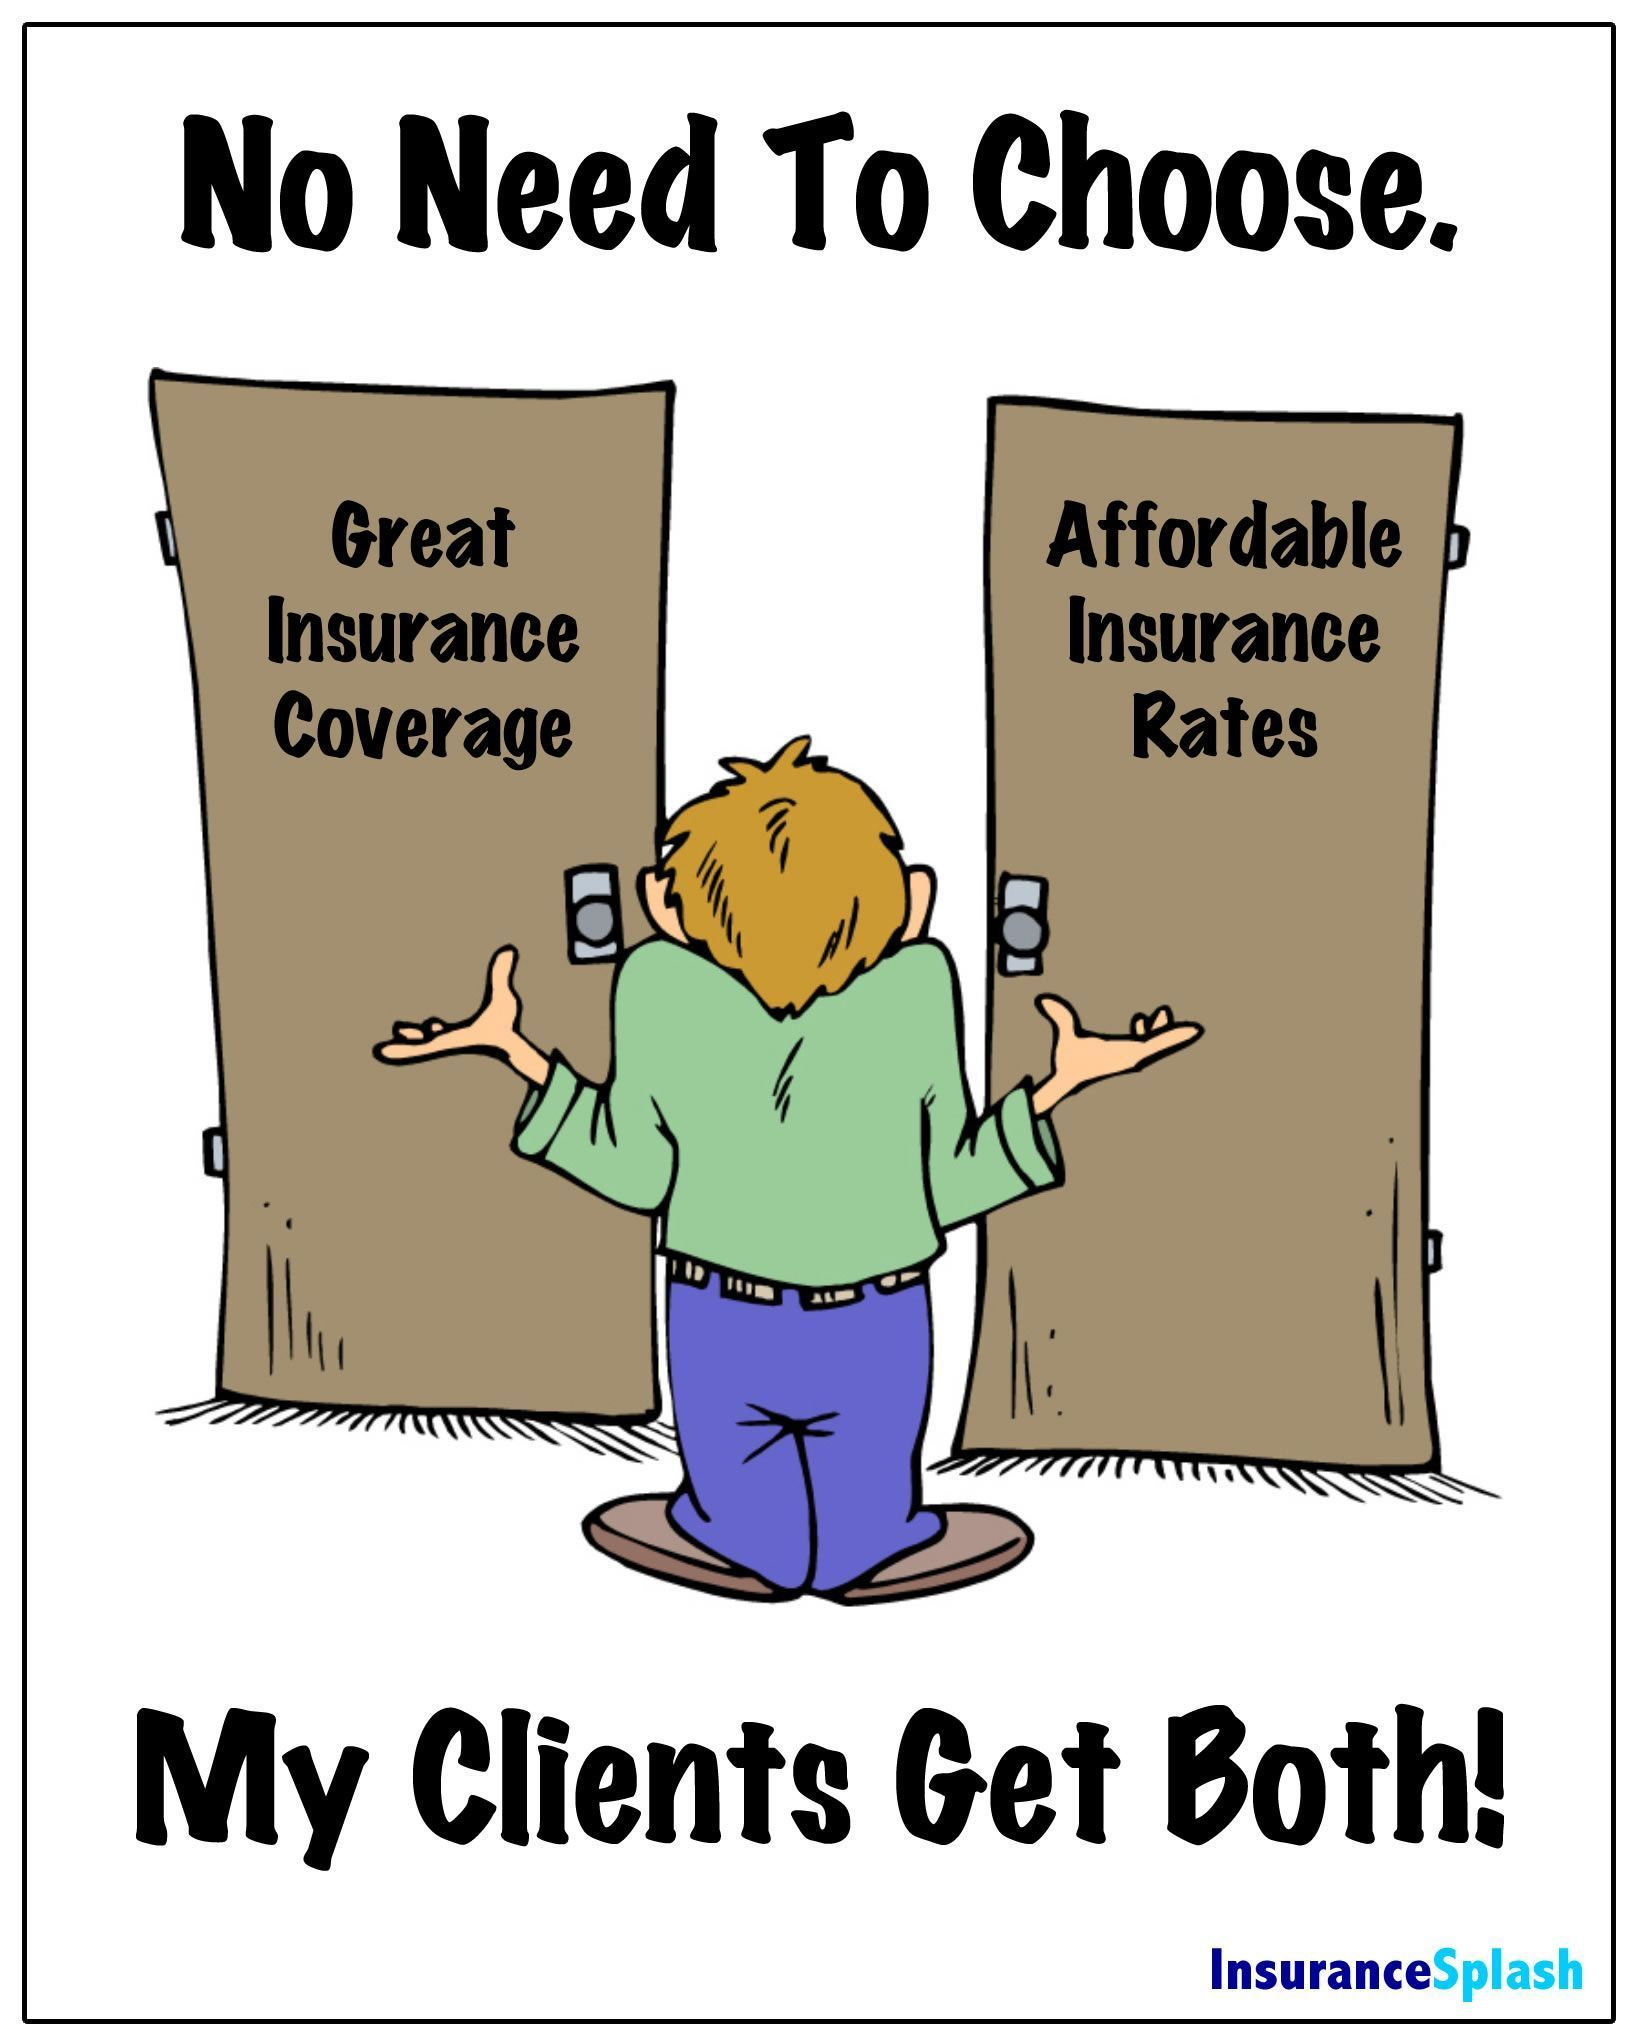 Fantastic Totally Free Get Great Insurance Coverage And Affordable Insurance Rates Ideas The Very Best Health Insurance For Insurance Marketing Life Insurance Quotes Affordable Health Insurance